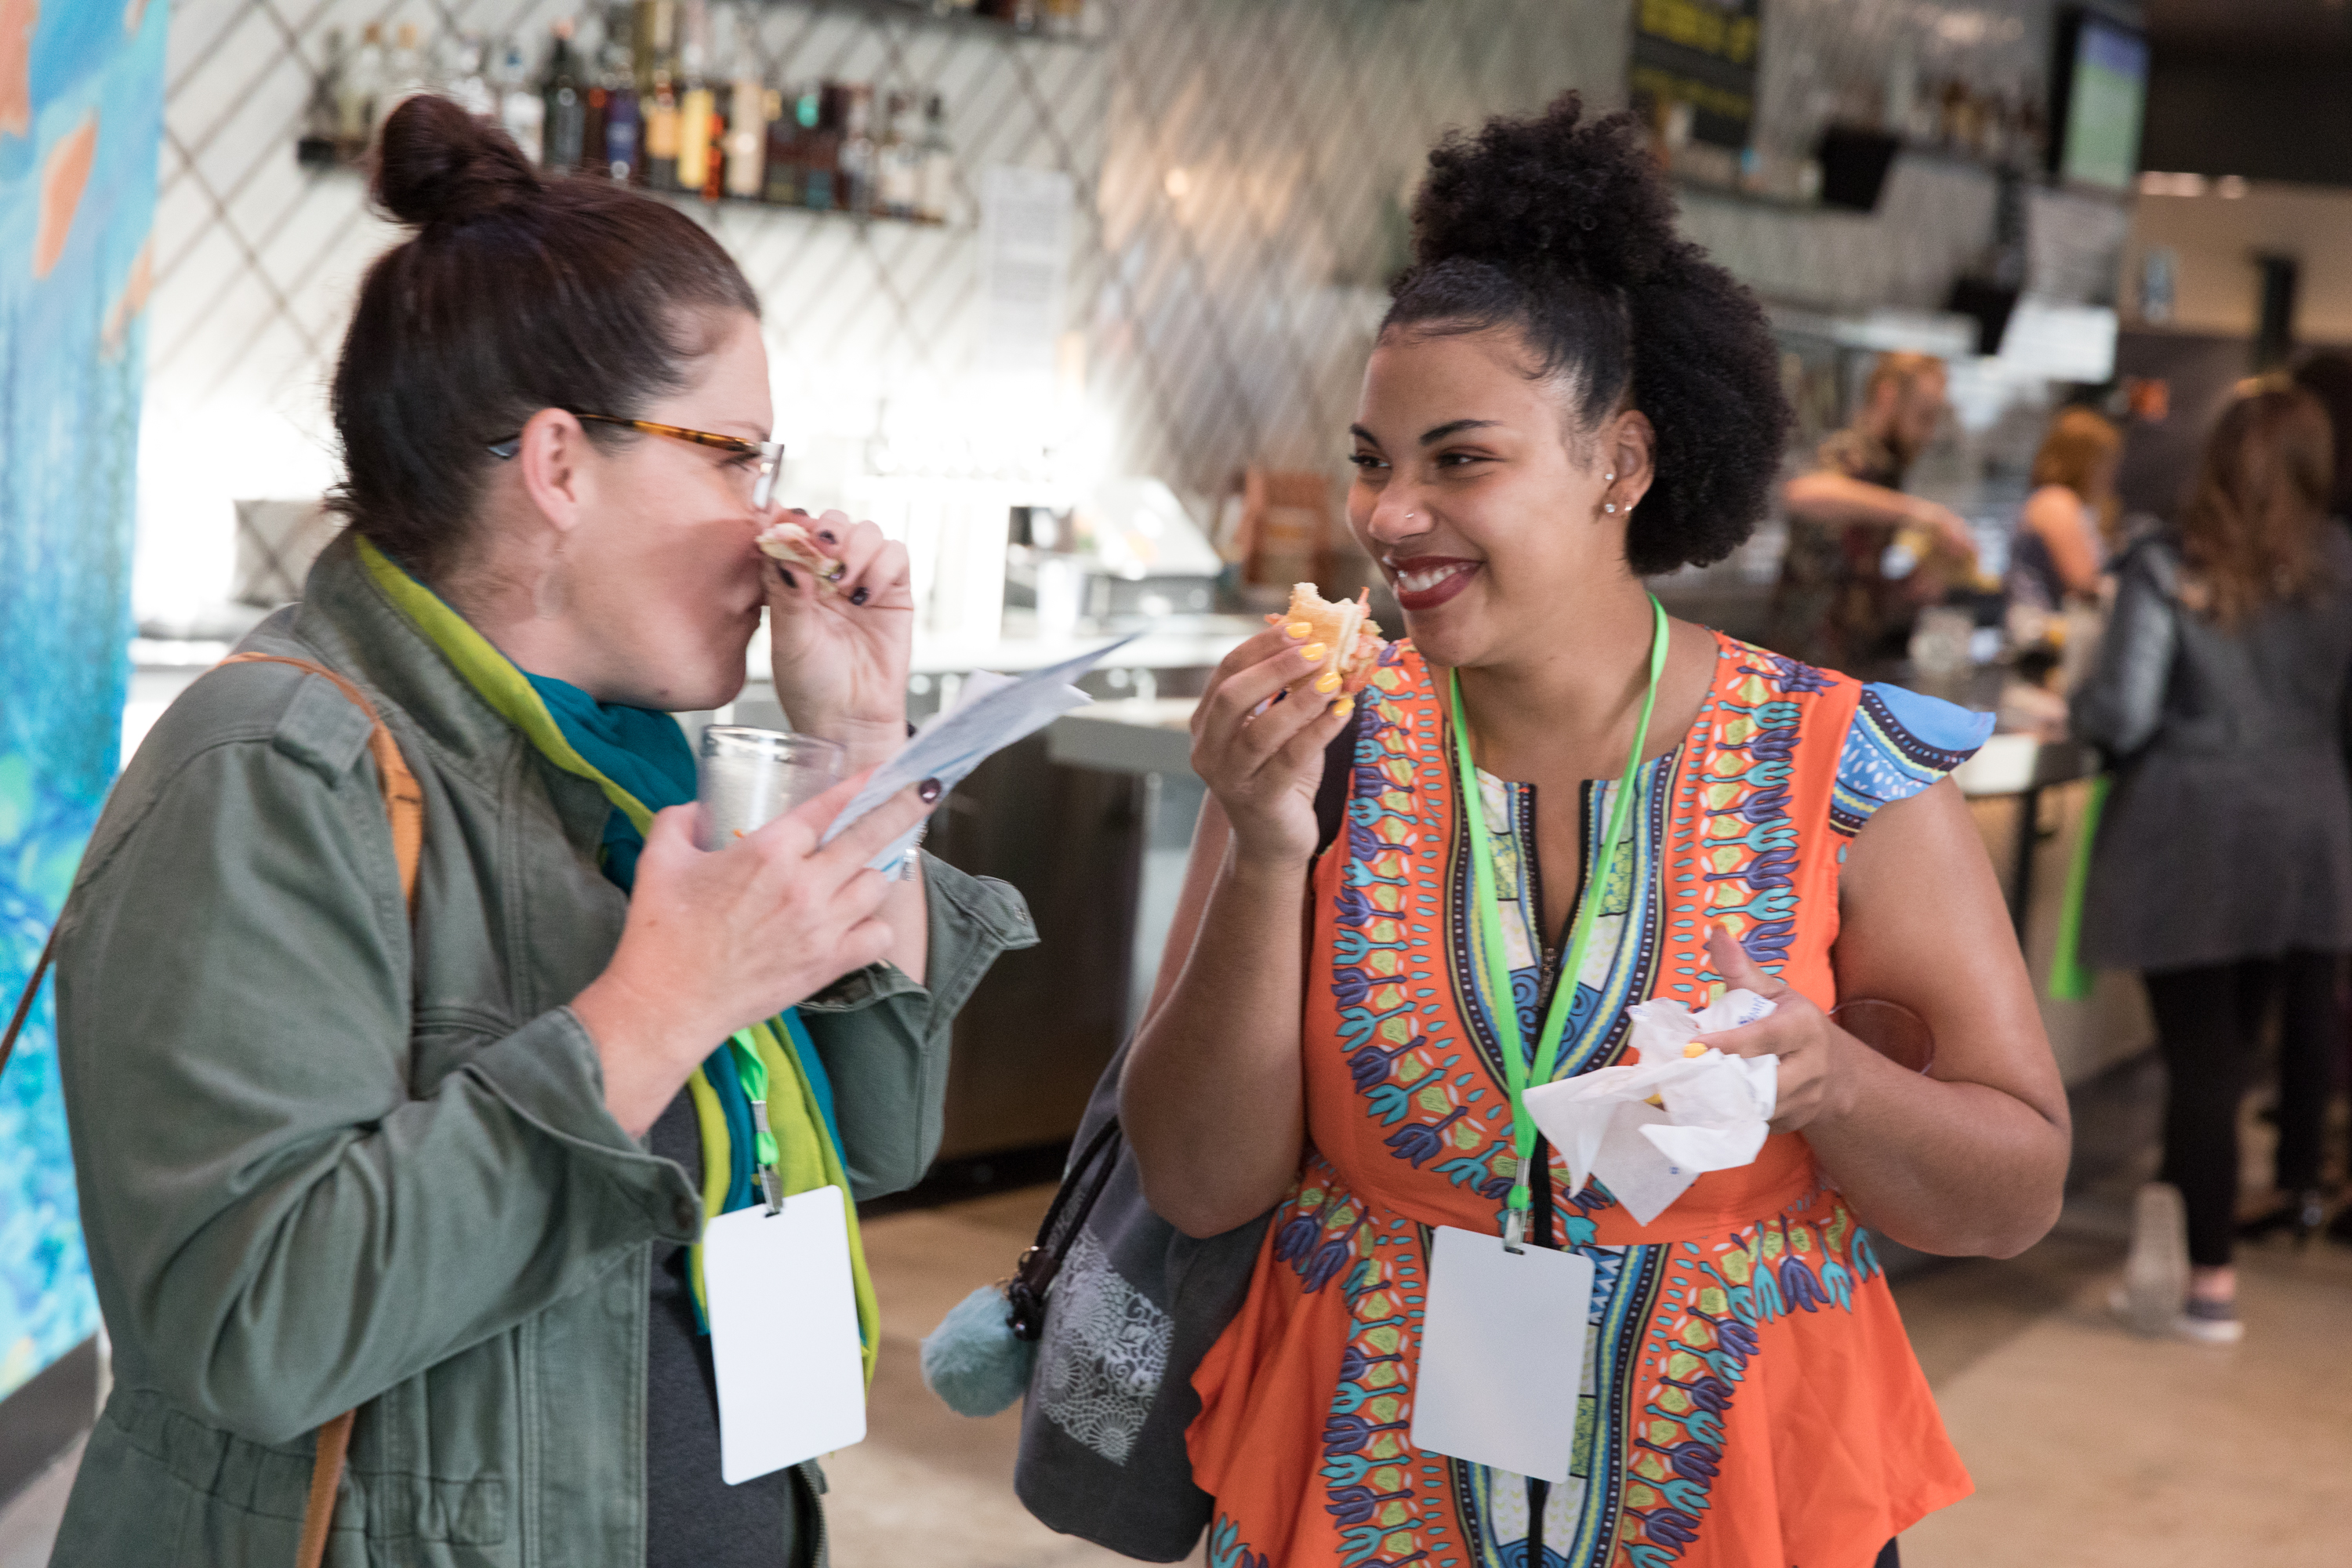 Our free food festival, ezFoodFest, landed in Denver recently; sponsored by ezCater, twelve of our partner restaurants cooked and served top-notch food to over 270 businesspeople after work.